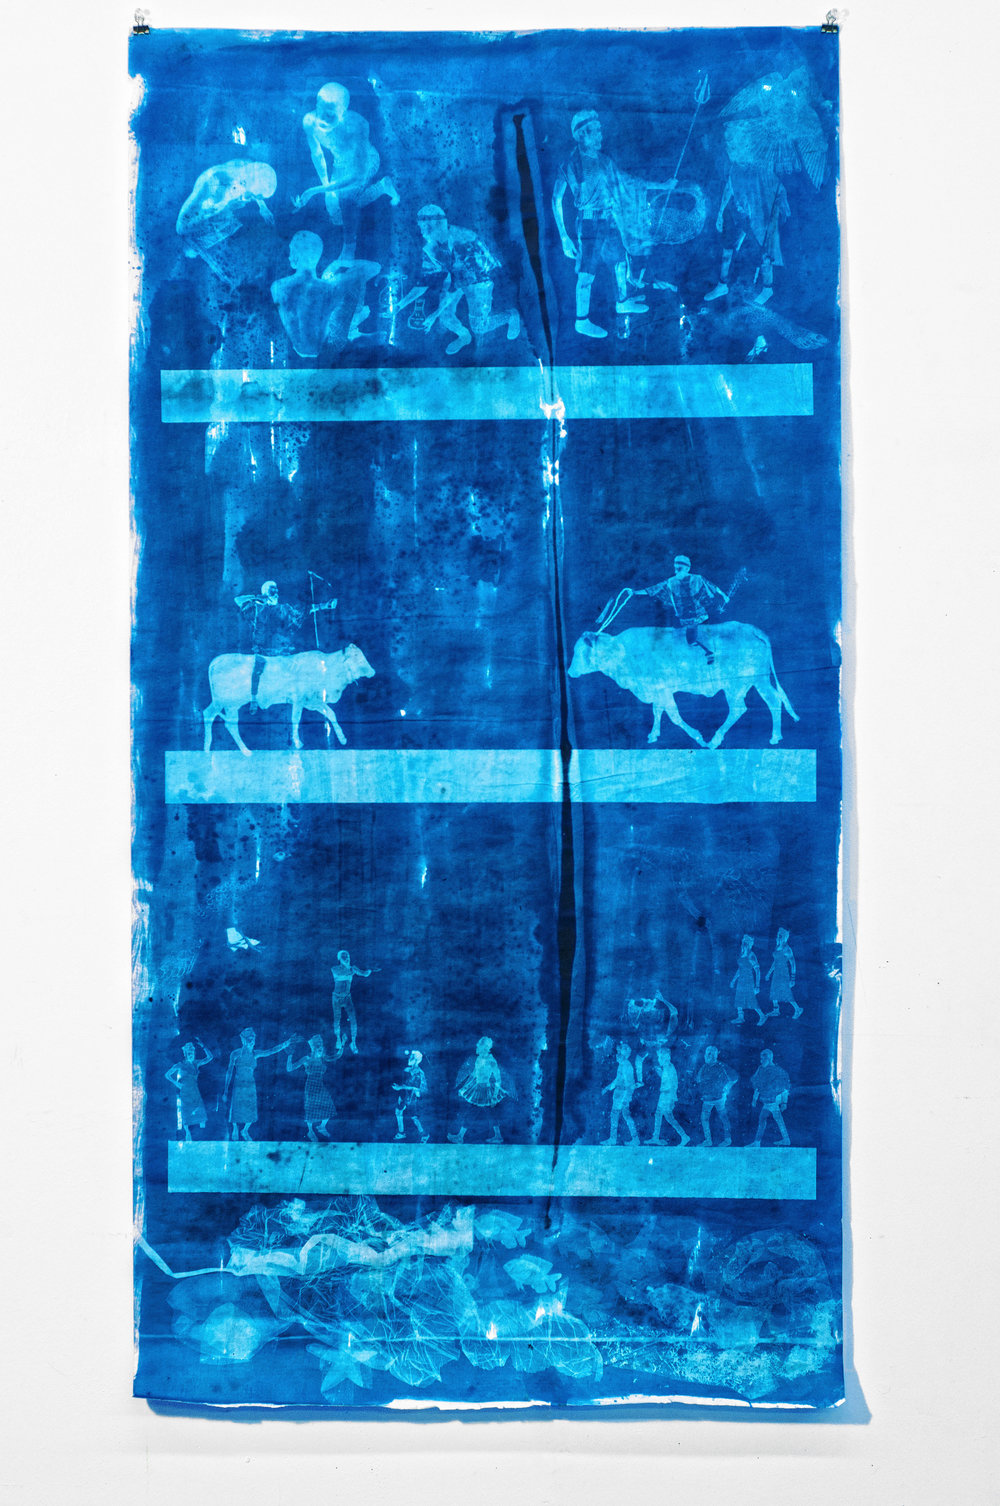 Ivan Forde,  Three Rivers  (from Invocation), 2018  Blueprint on rice paper, 50 x 25 inches (paper size), 60 x 33 x 5 inches (mounted in plexiglass box), unique   Inquire